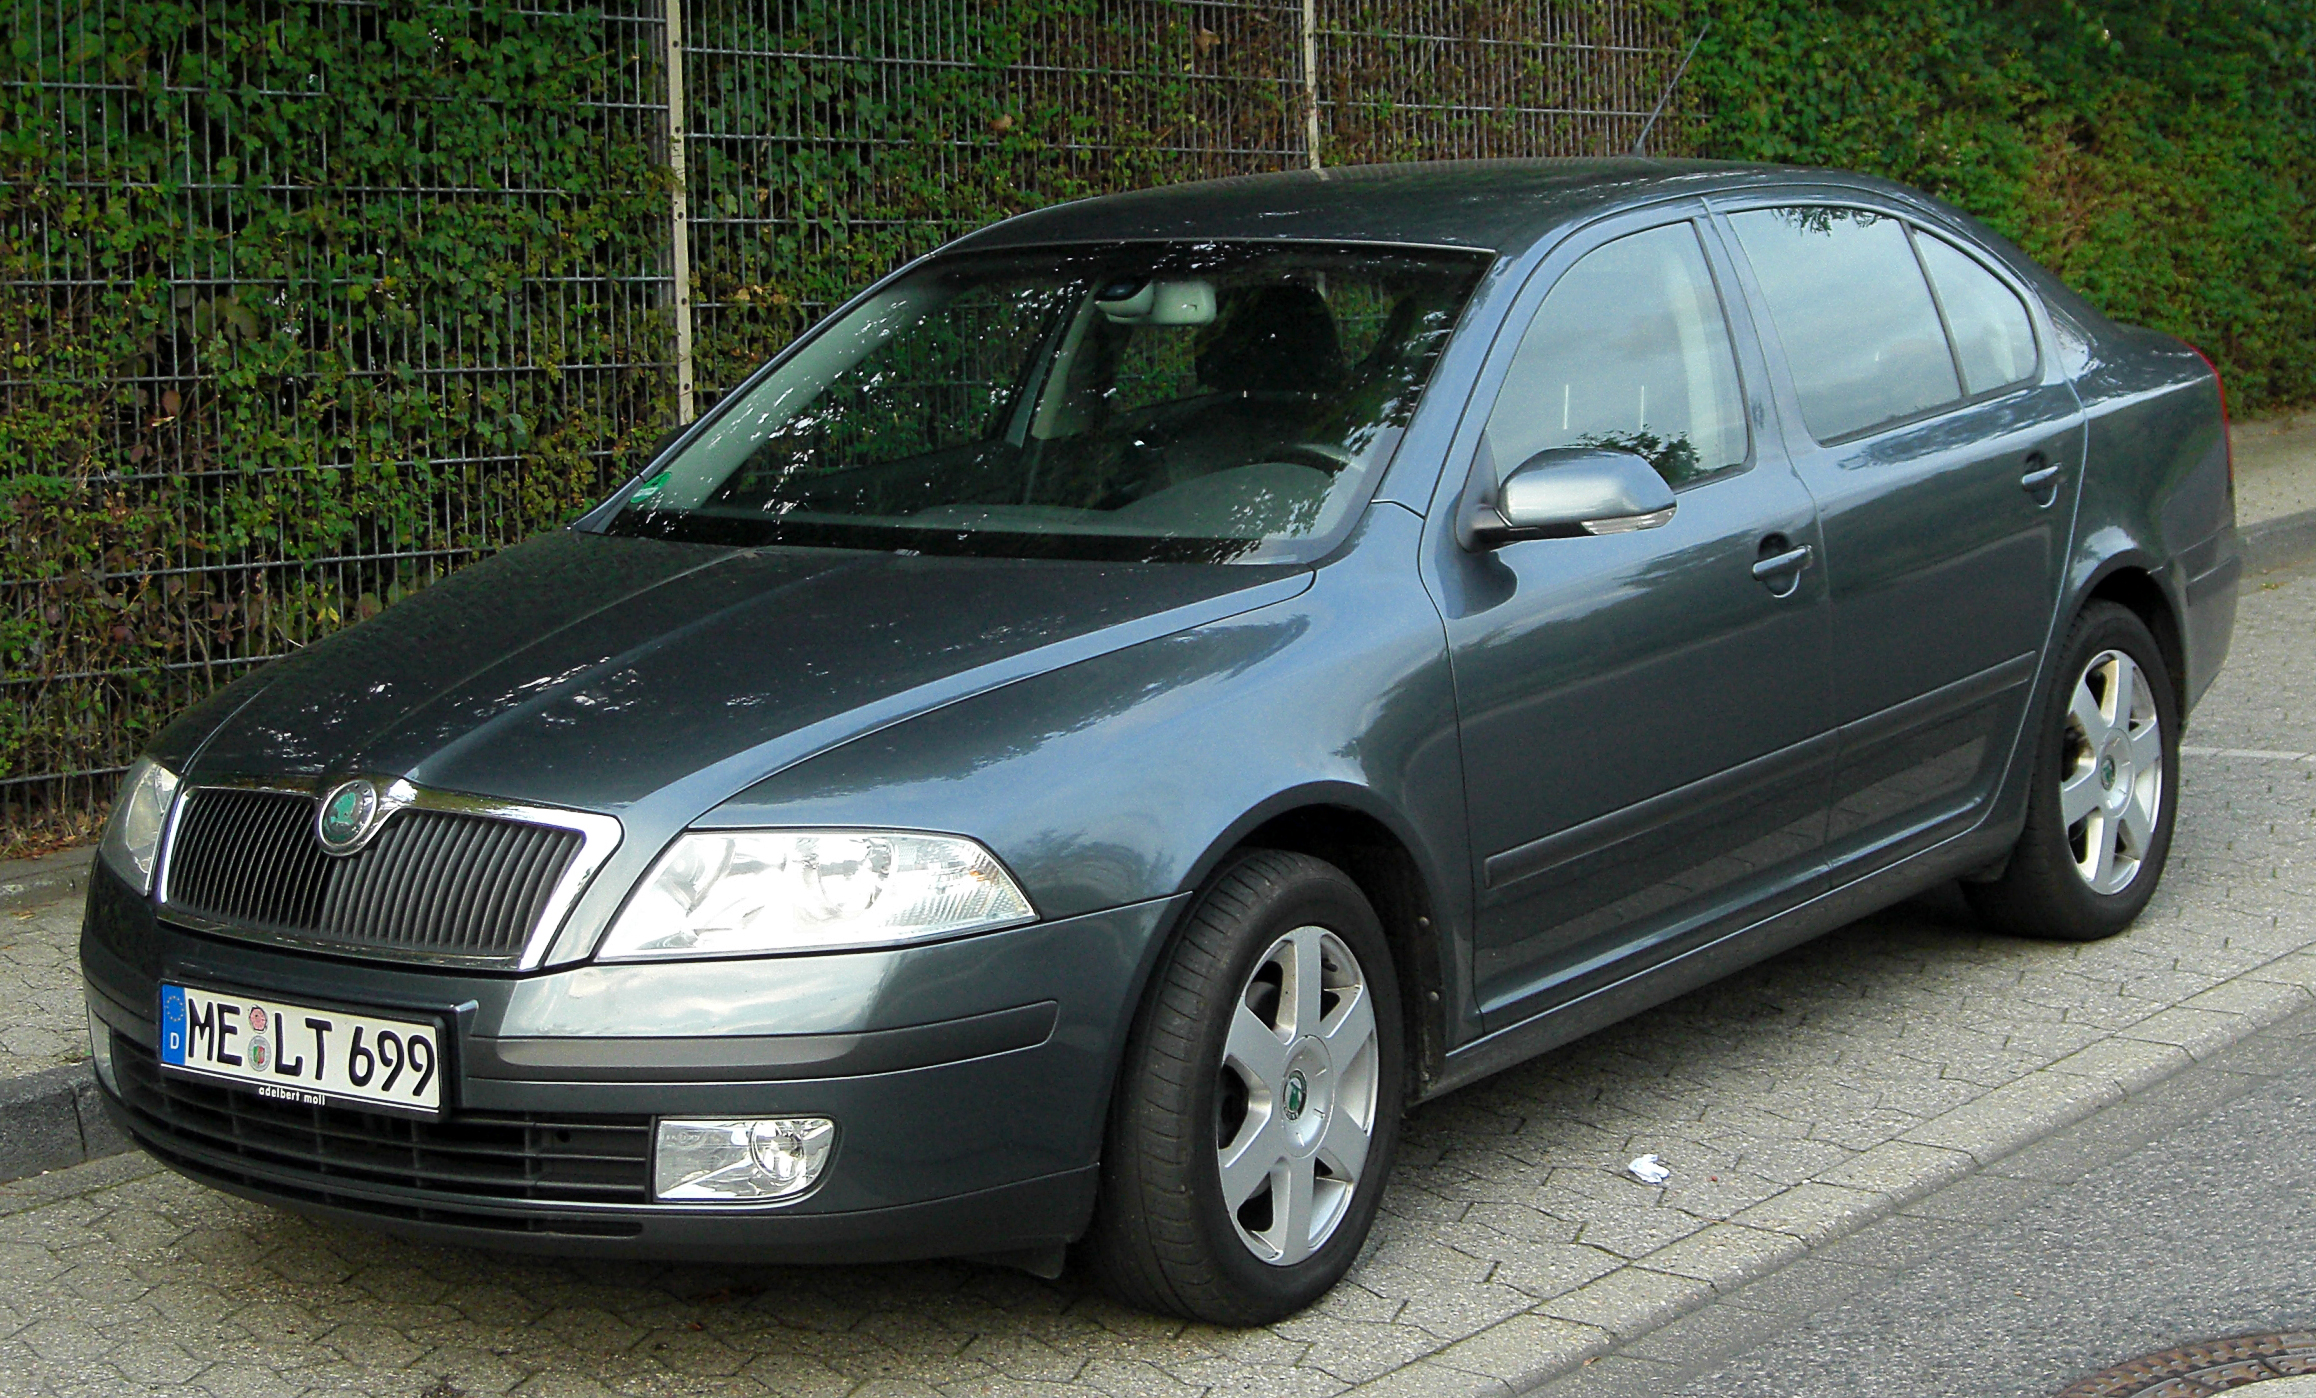 2010 skoda octavia tour ii pictures information and specs auto. Black Bedroom Furniture Sets. Home Design Ideas